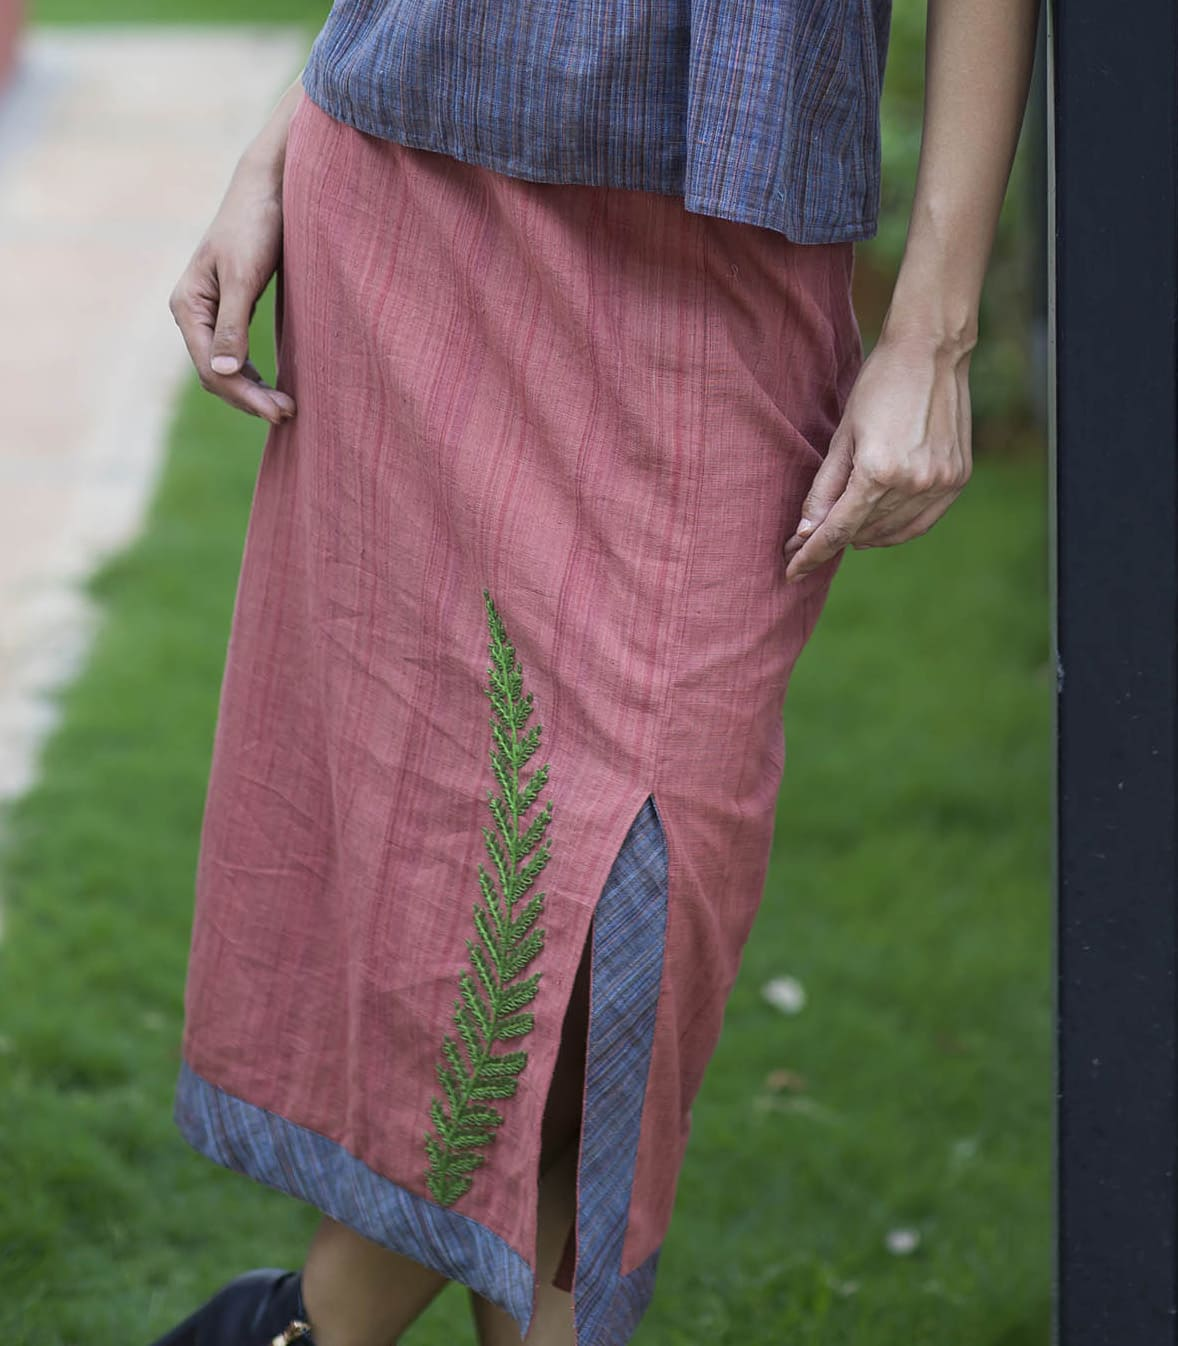 Handloom straight skirt with off center slit